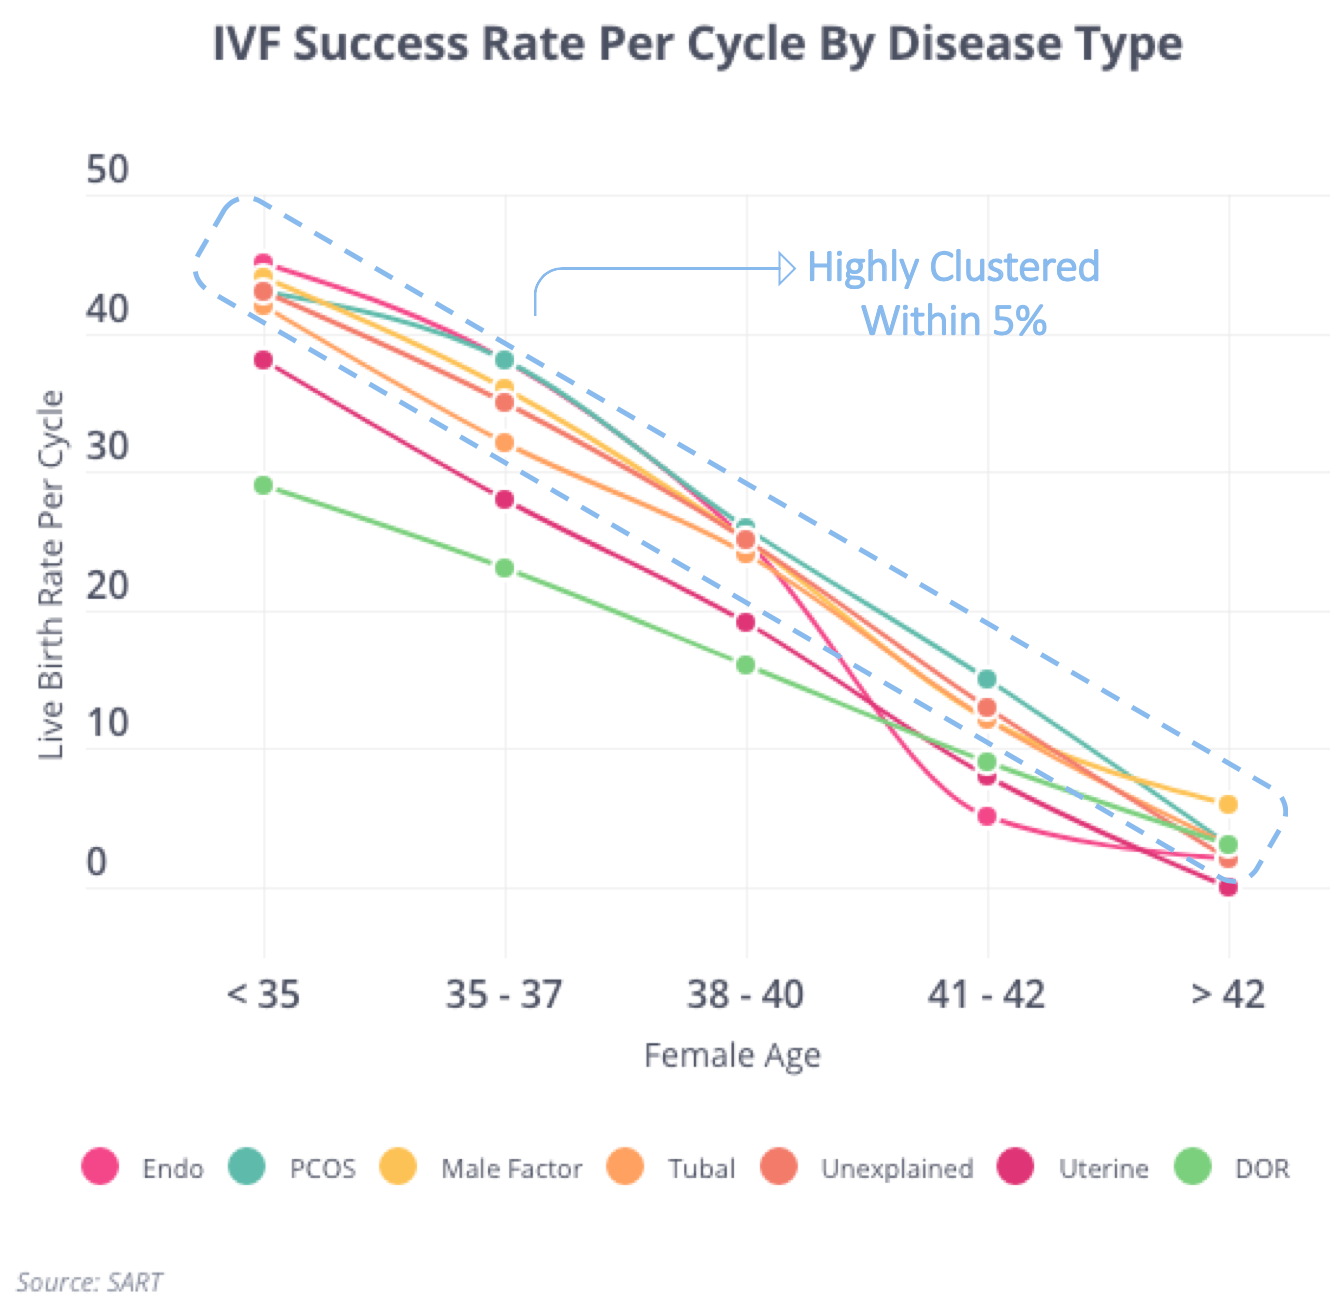 IVF and Tubal Success Rates